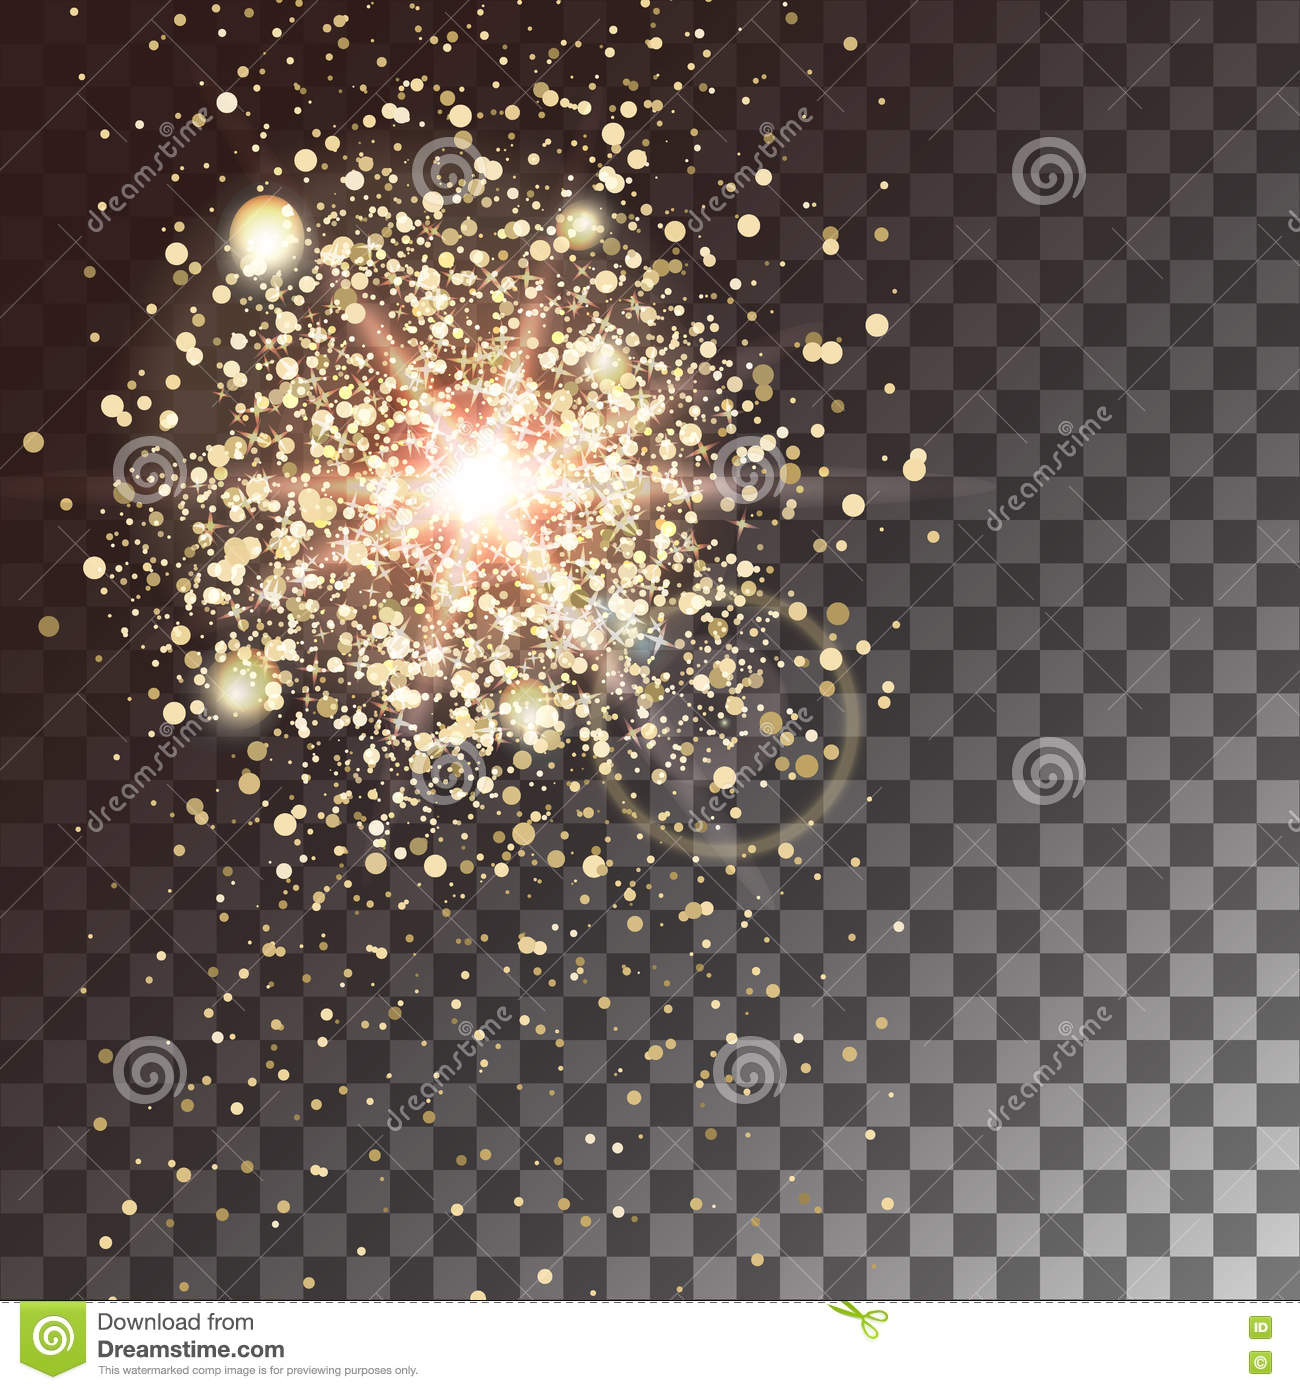 Gold glitter bright vector transparent background golden sparkles - Gold Glow Light Effect On A Transparent Background Star Burst With Sparkles Vector Illustration